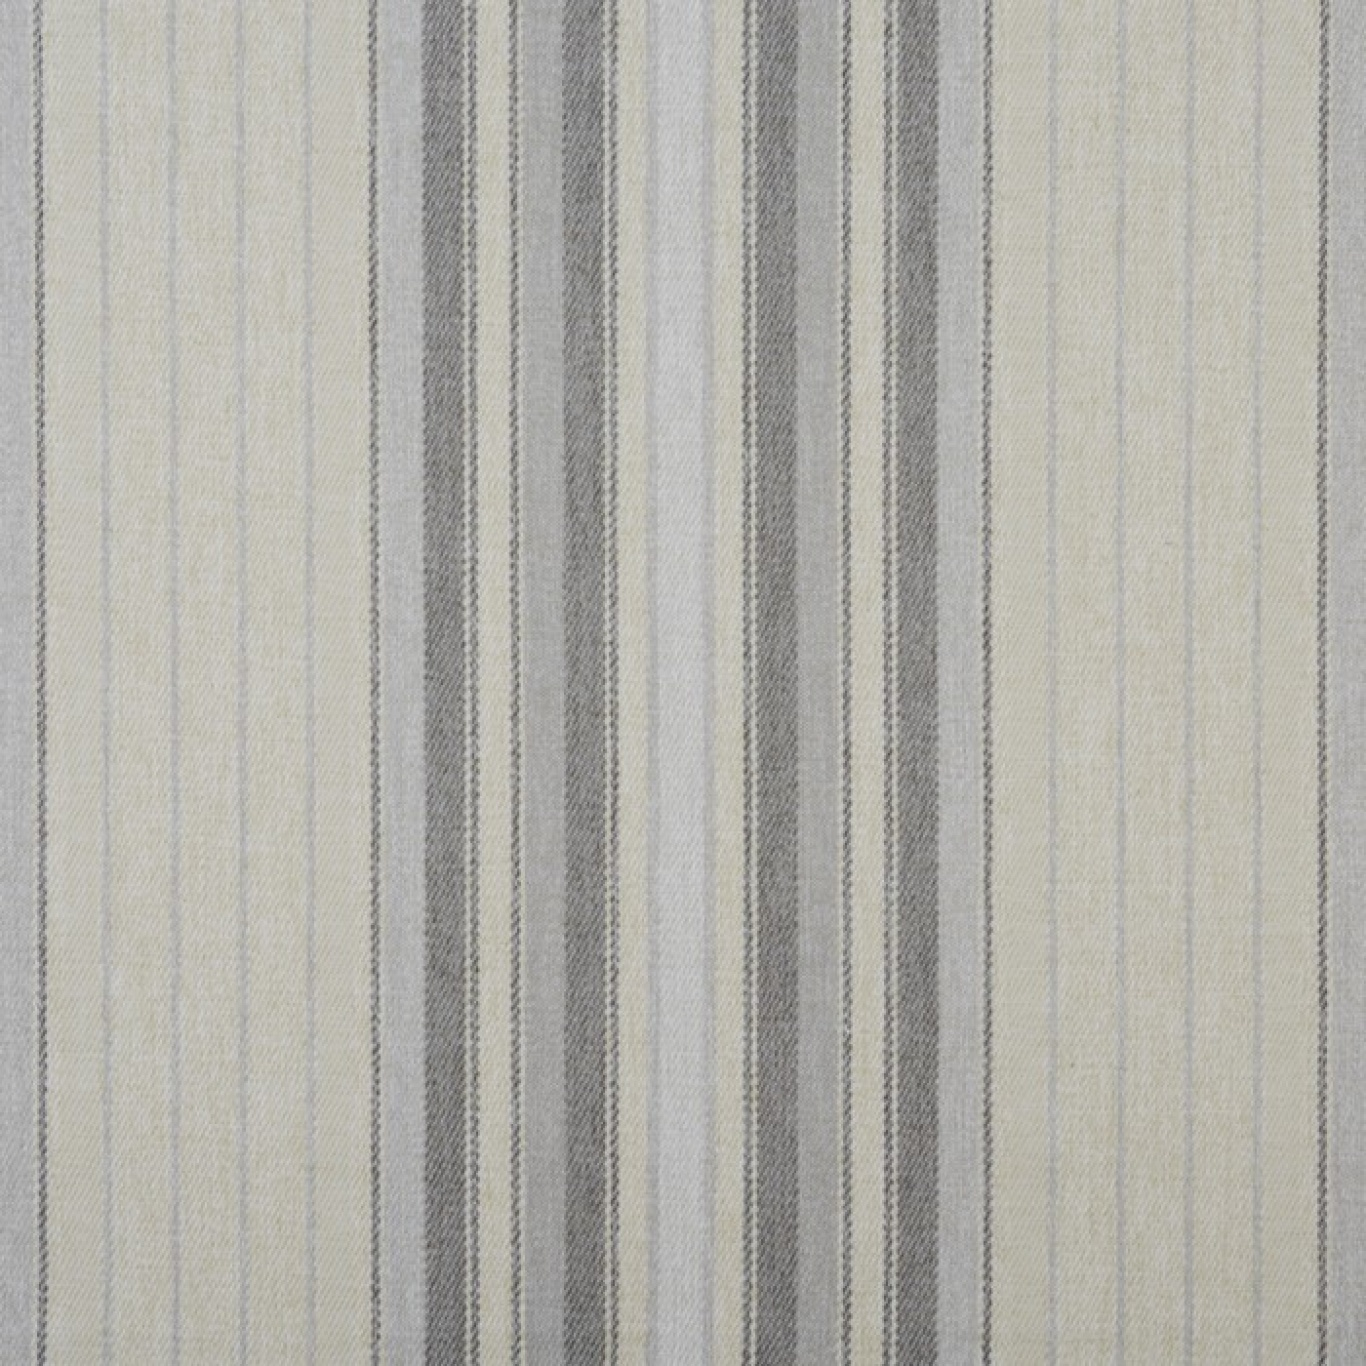 Image of Prestigious Braemar Pebble Fabric